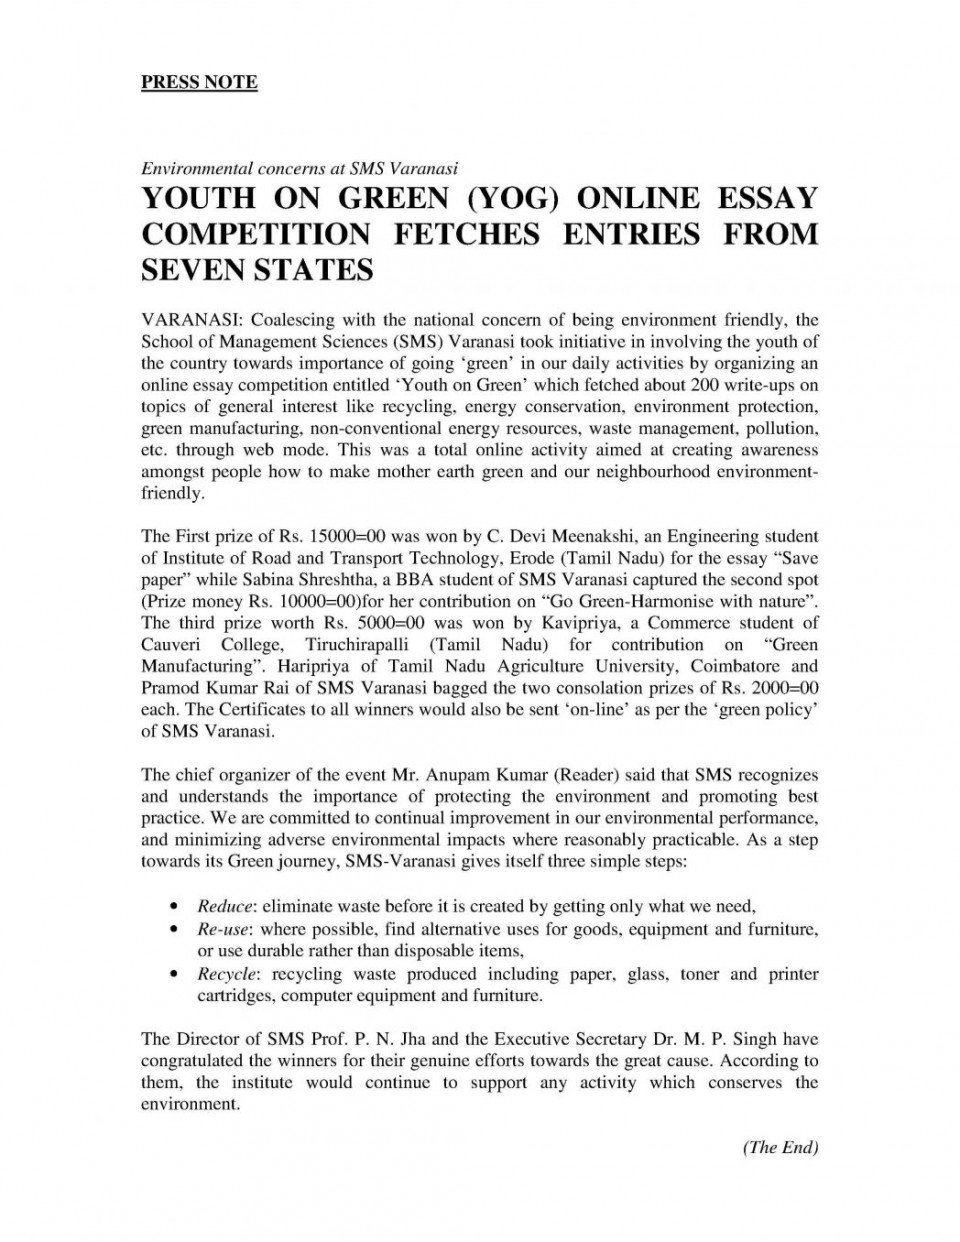 020 Best Essays For College Essay On Good Habits How Tot Application Online Yog Press Re About Yourself Examples Your Background Failure Prompt Off Hook 1048x1356 Example Amazing To Start An With A Quote Analysis Book 960